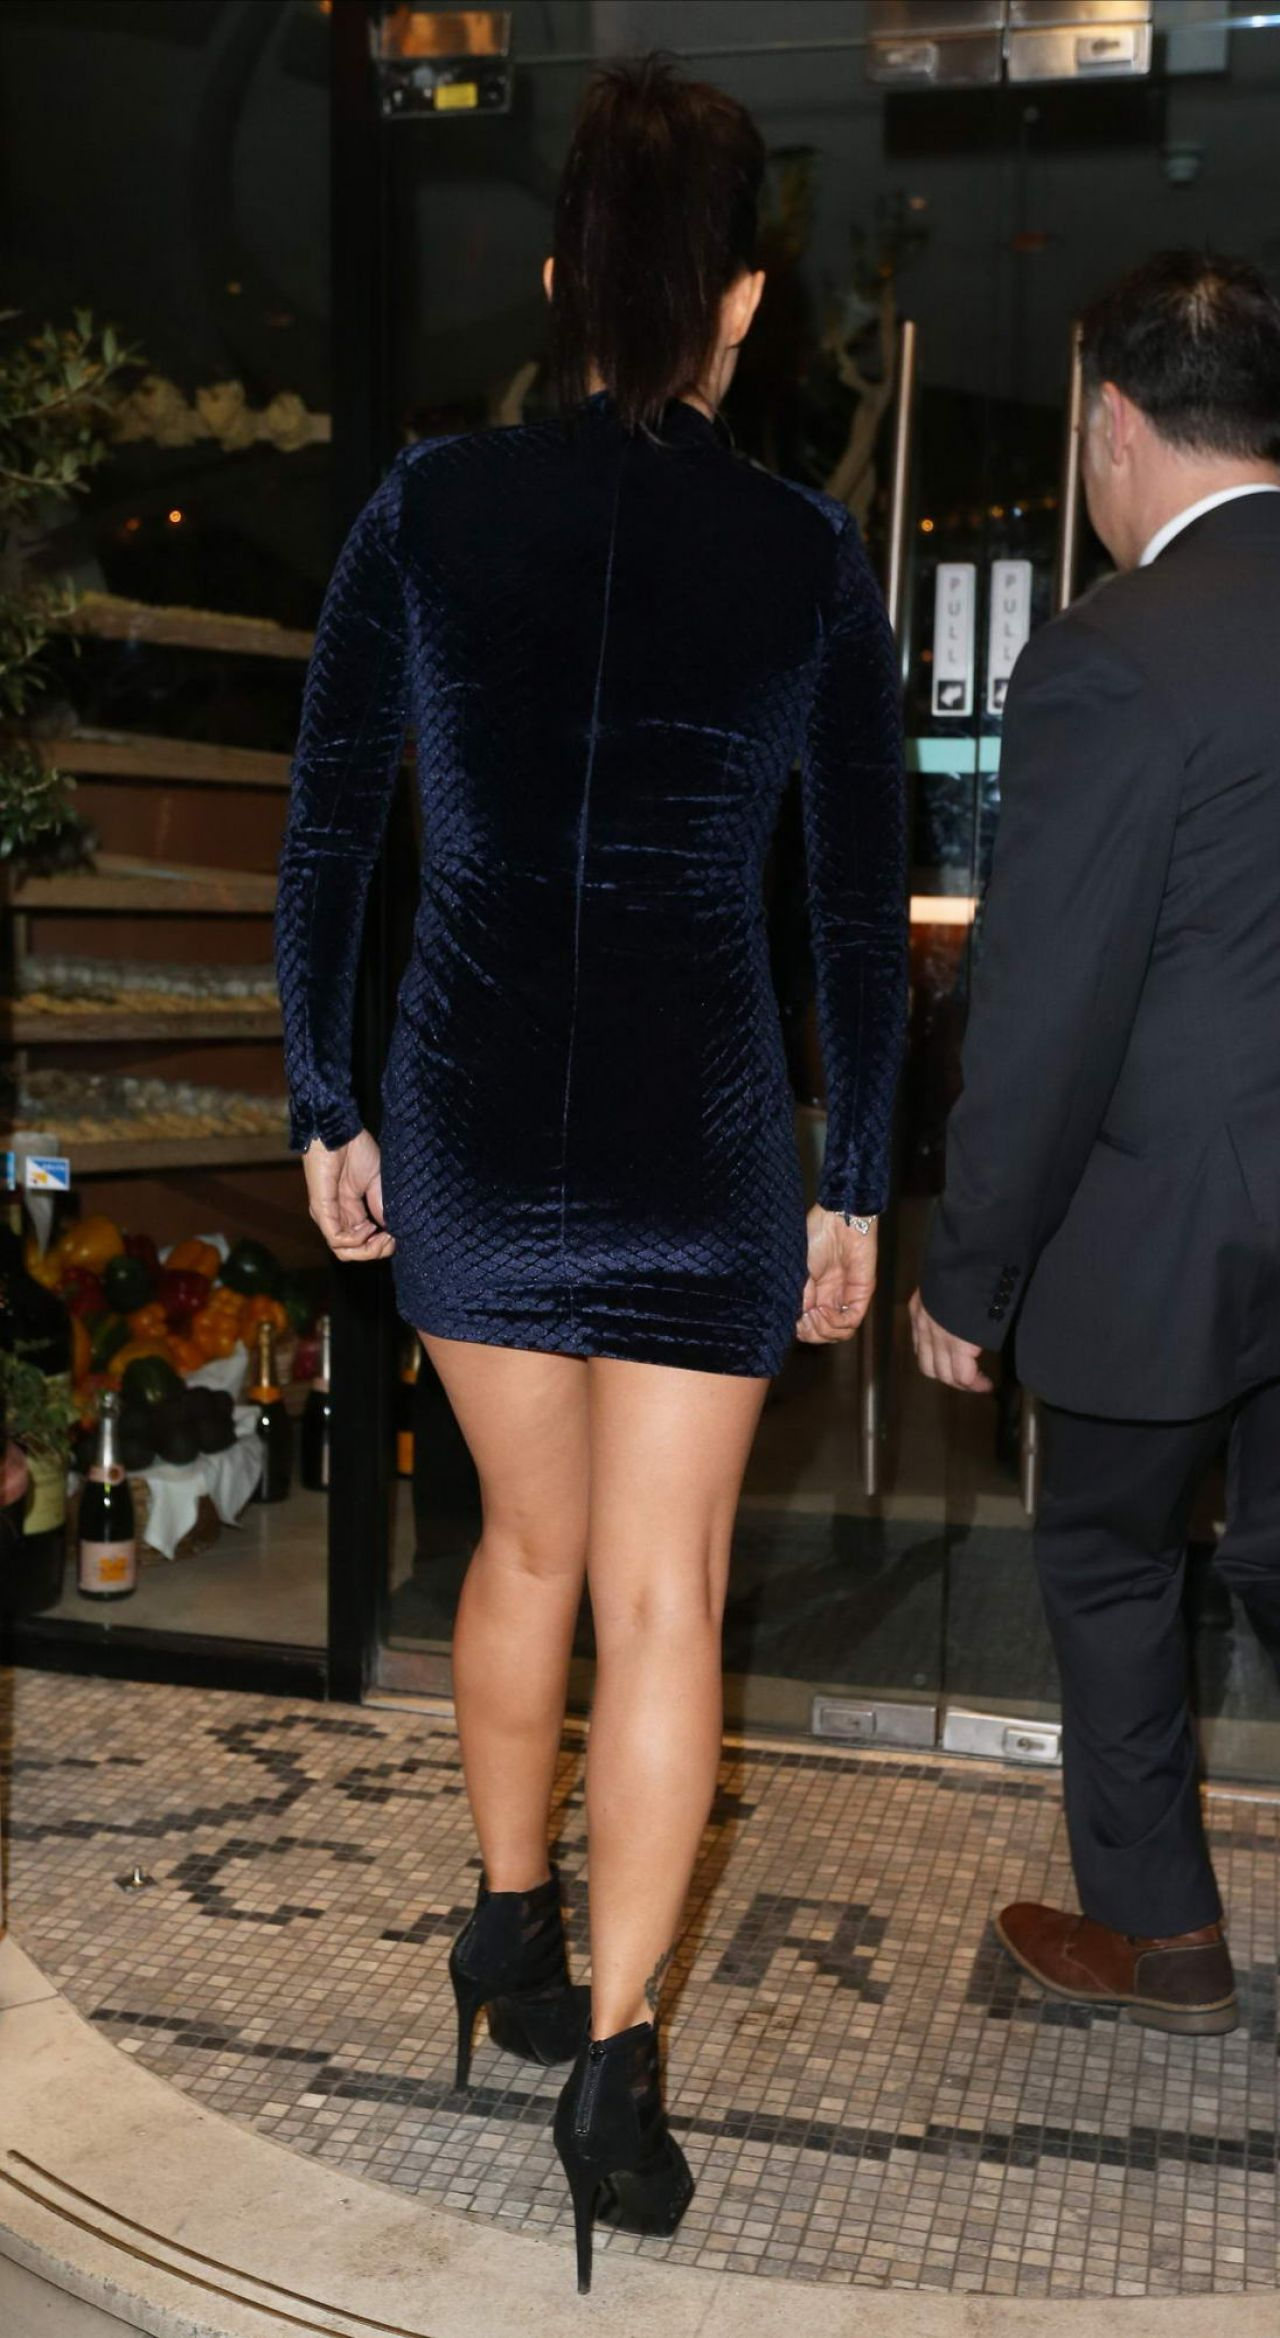 Kym Marsh Night Out Style San Carlo Restaurant In